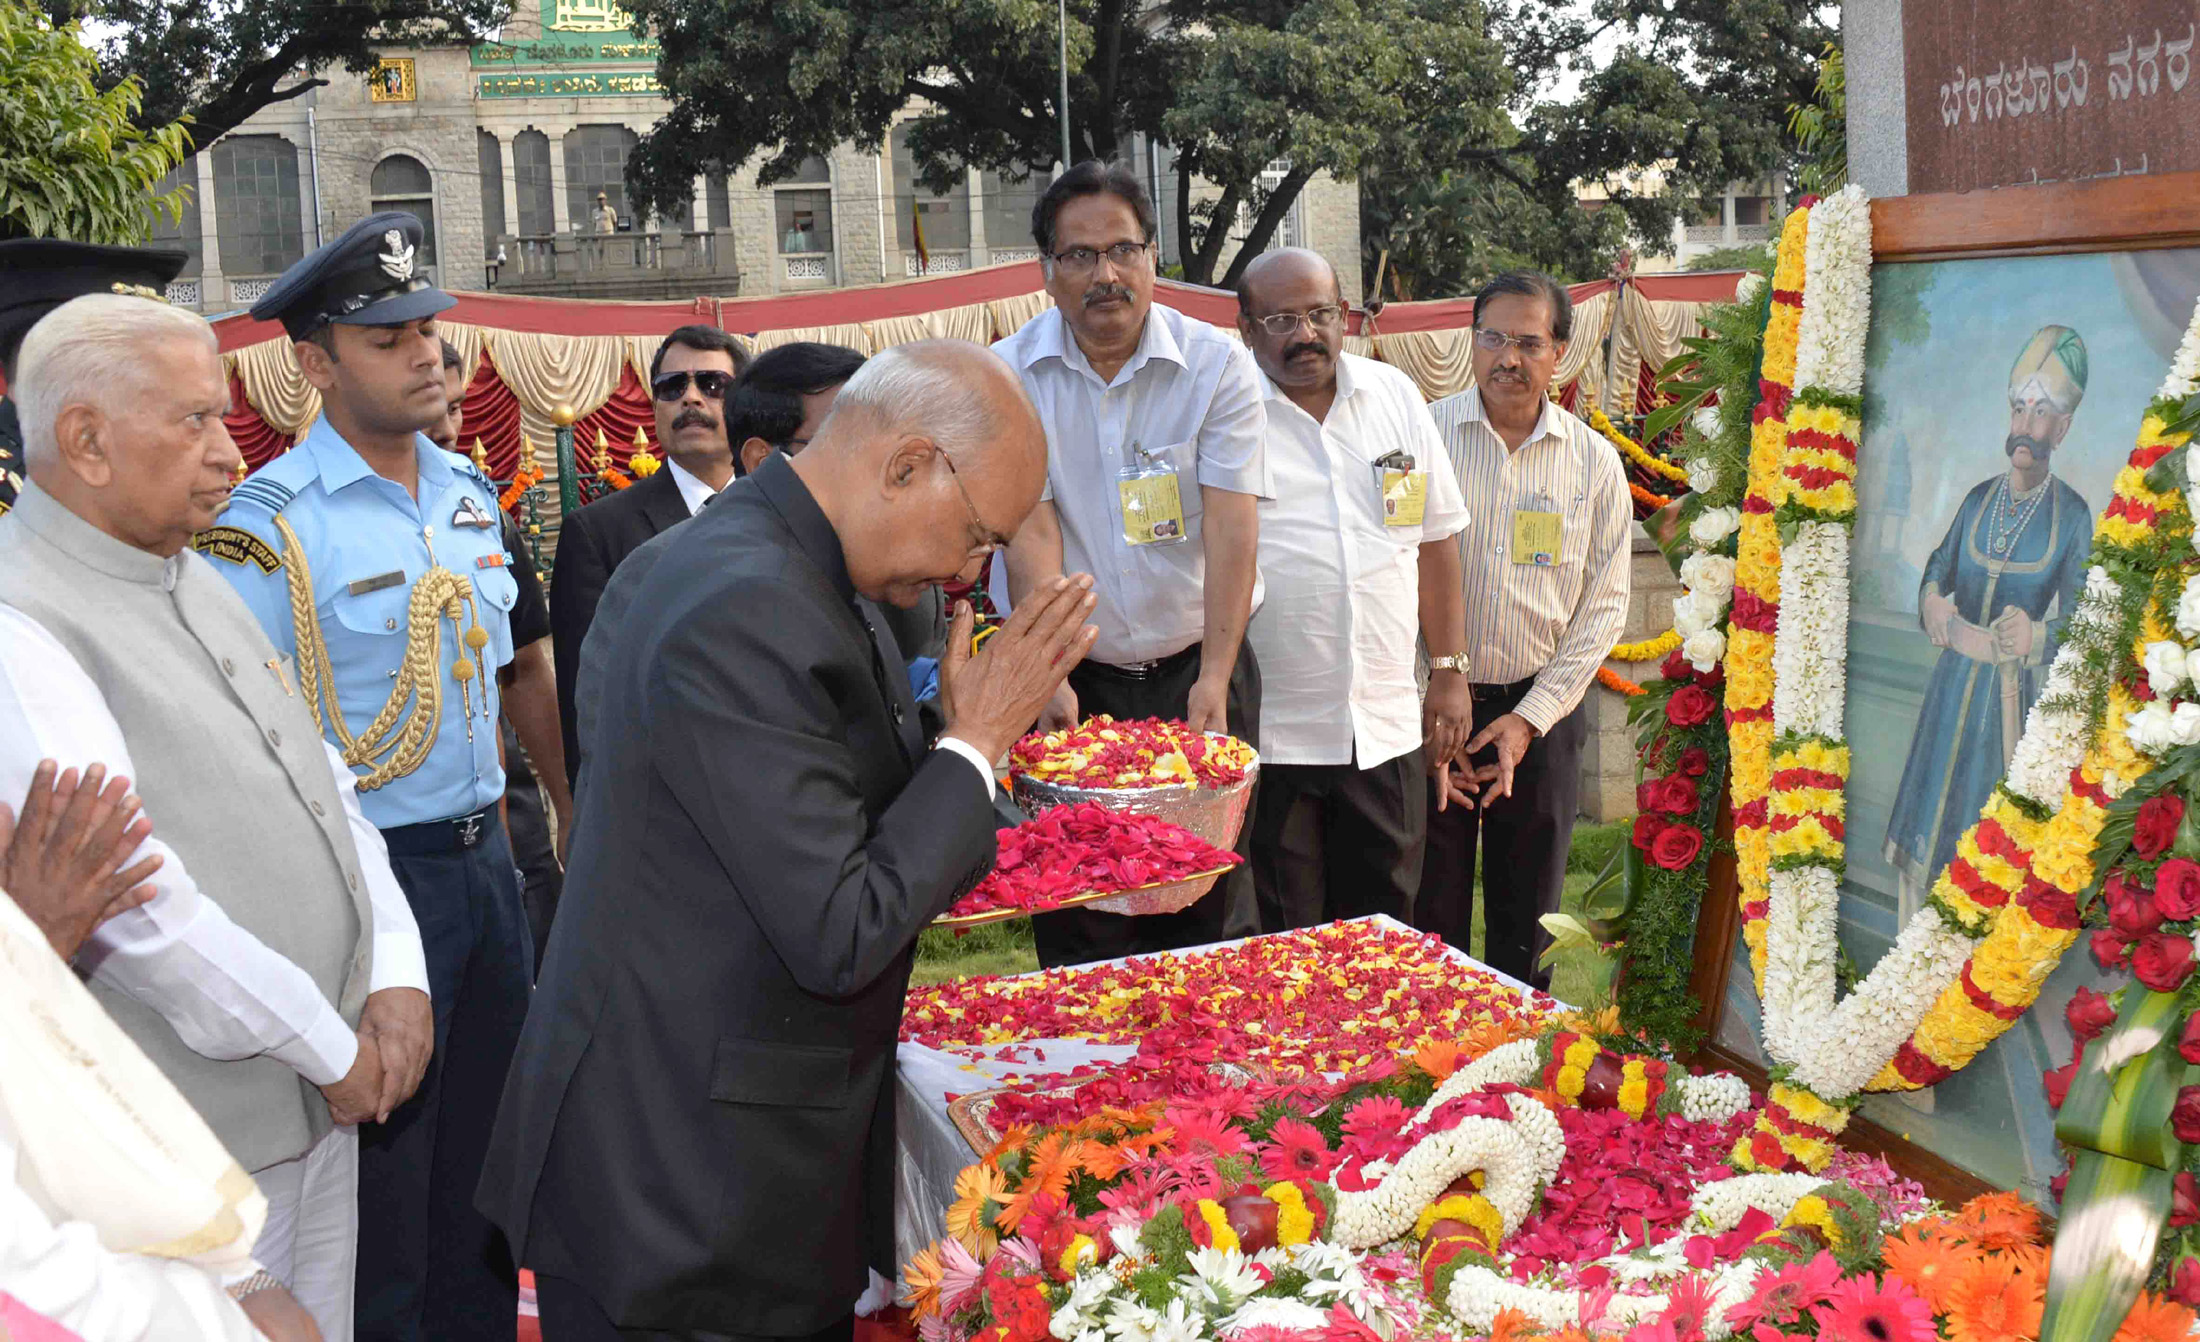 The President, Shri Ram Nath Kovind paying floral tribute at the statue of Shri Kempegowda at NR Square, in Bangalore, Karnataka on October 24, 2017. The Governor of Karnataka, Shri Vajubhai Rudabhai Vala is also seen.